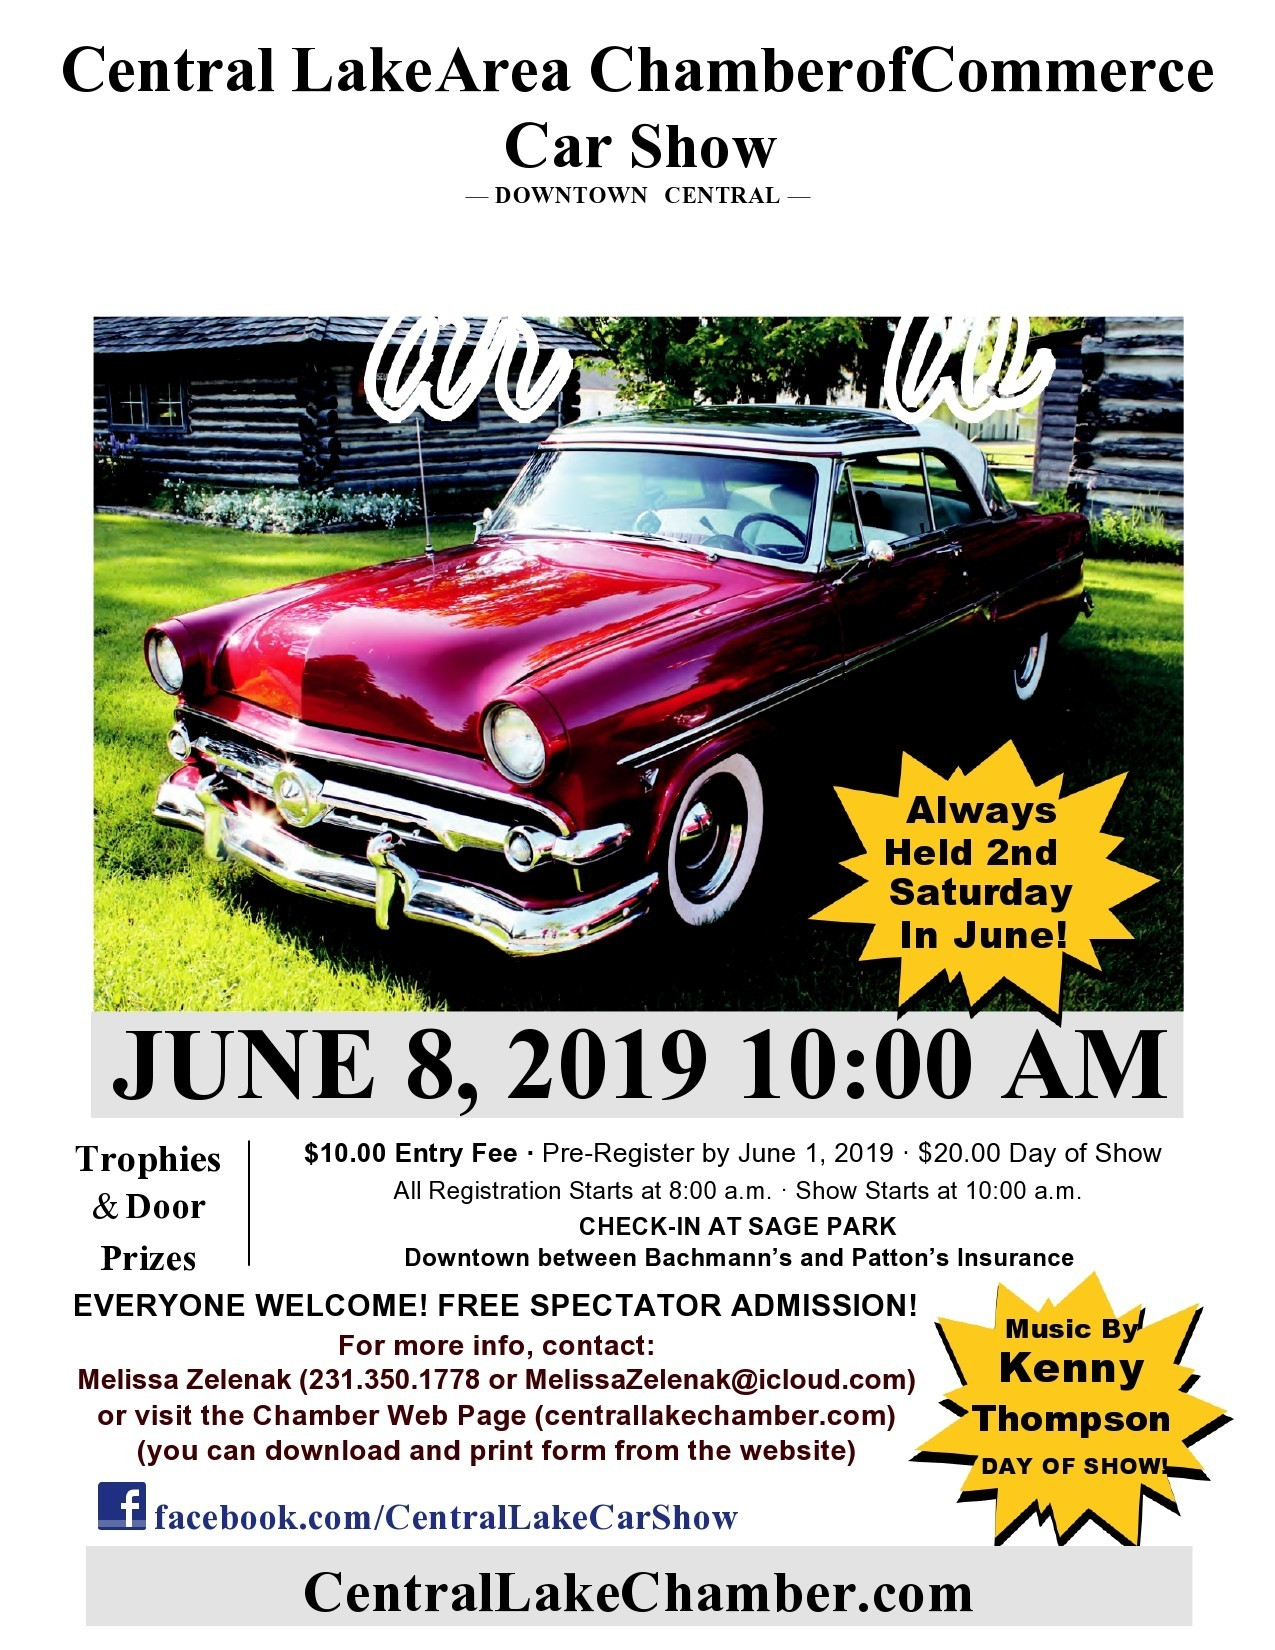 Free car show flyer 02